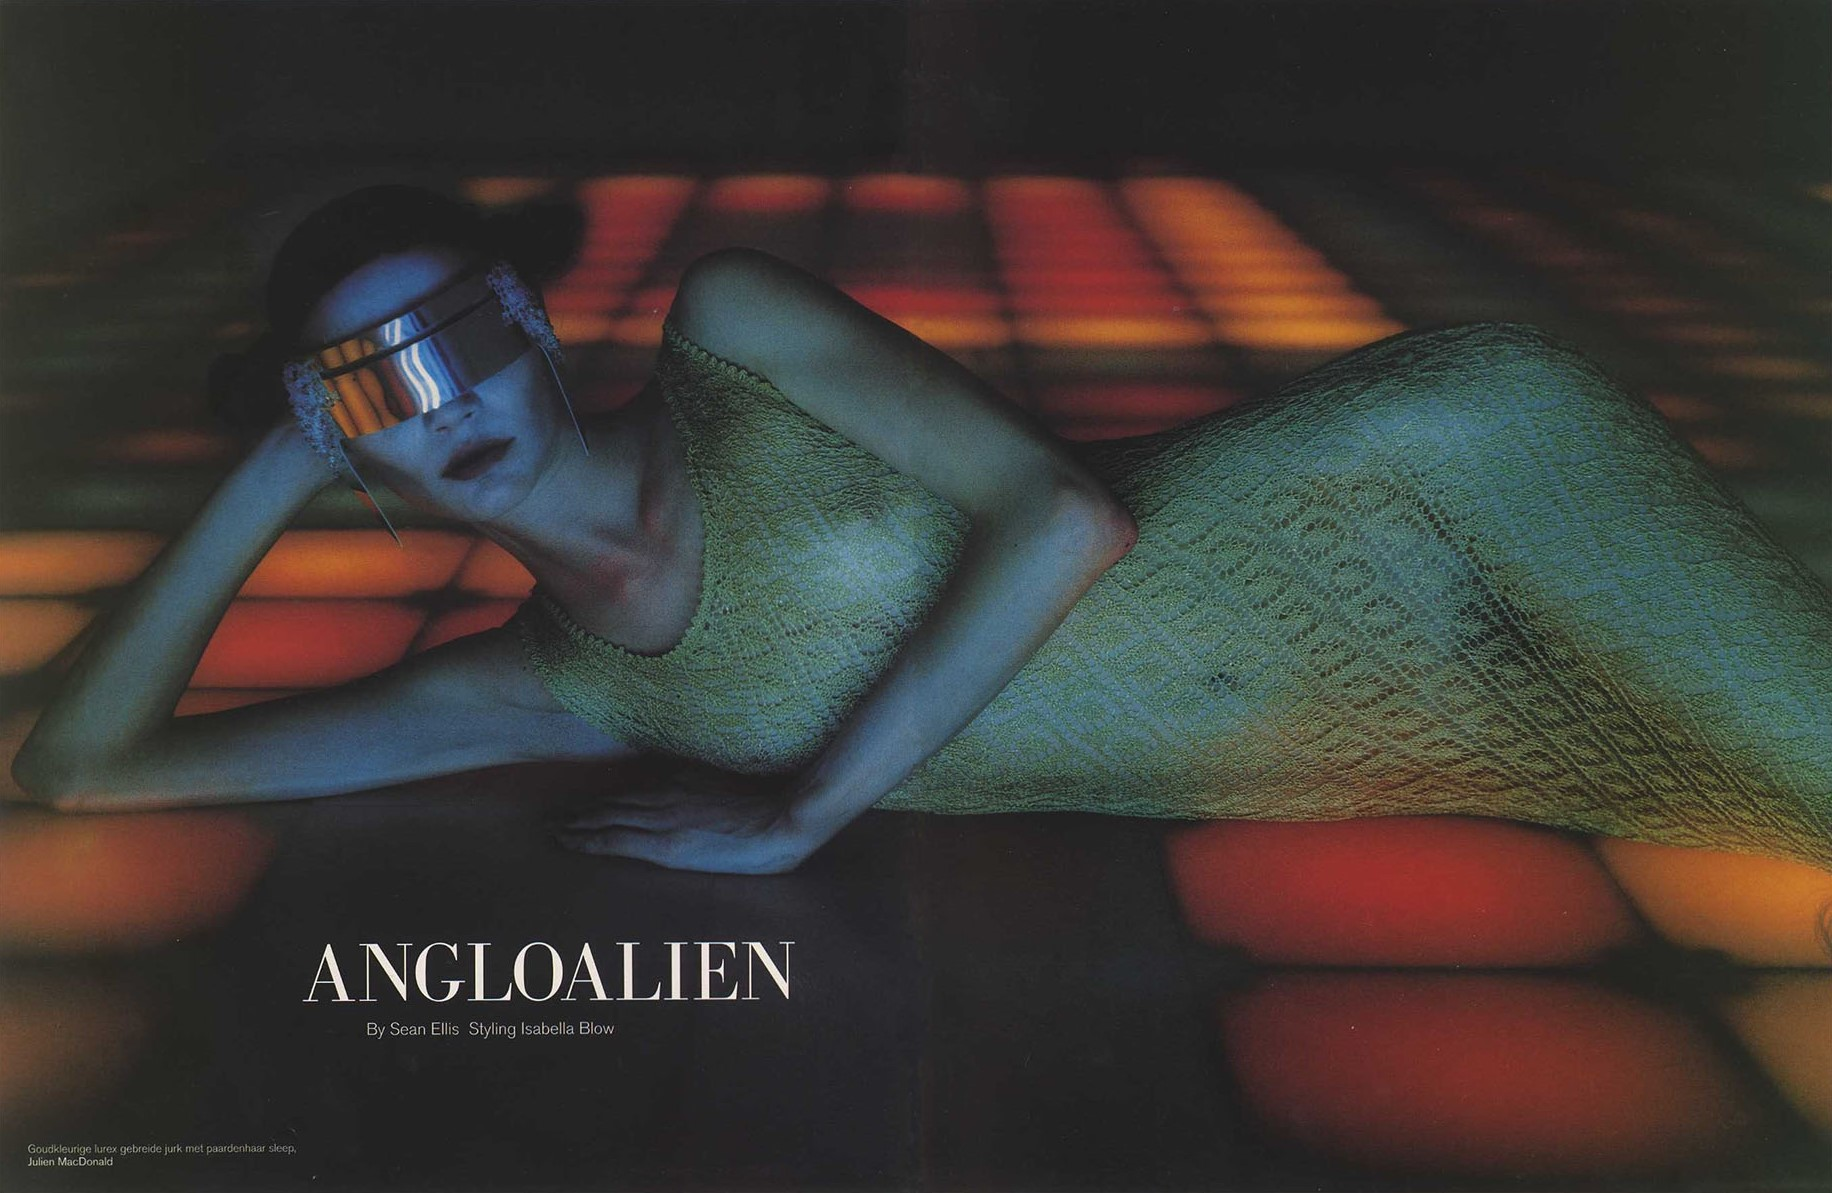 angloalien photography sean ellis styling isabella blow dutch 12 autumn 1997 1